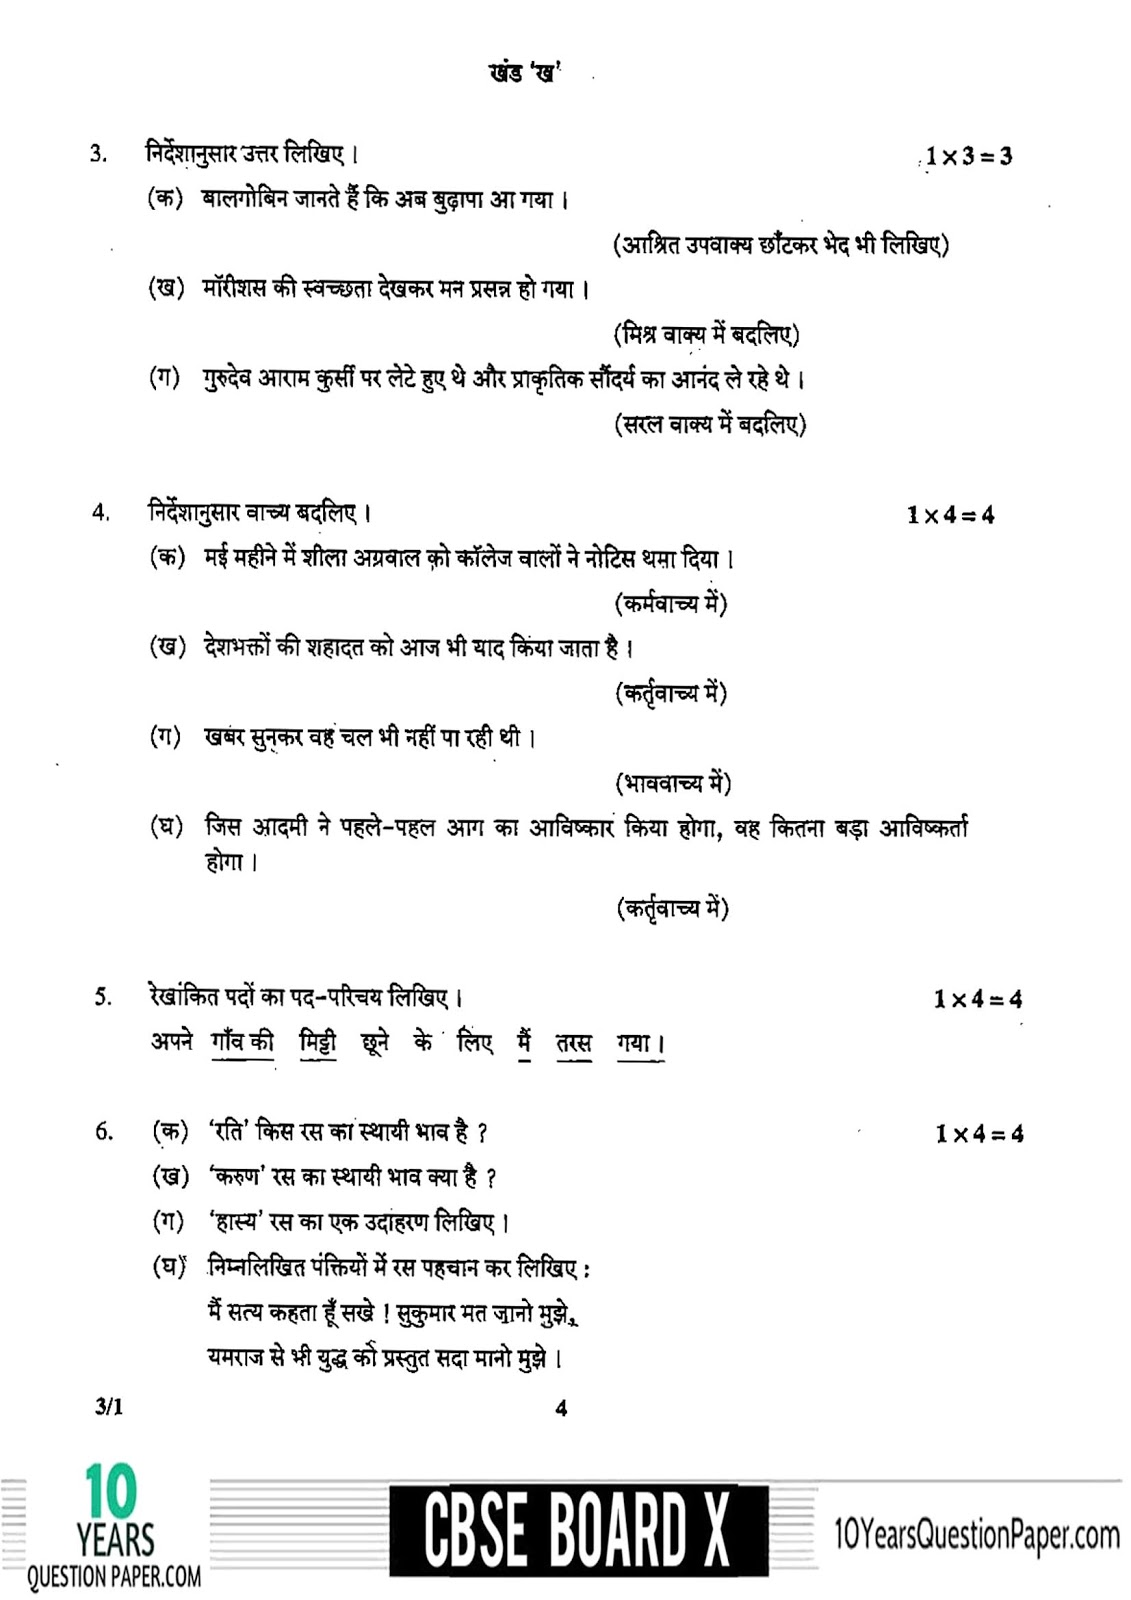 CBSE Board 2018 Hindi Course A Question paper Class 10 Page-04